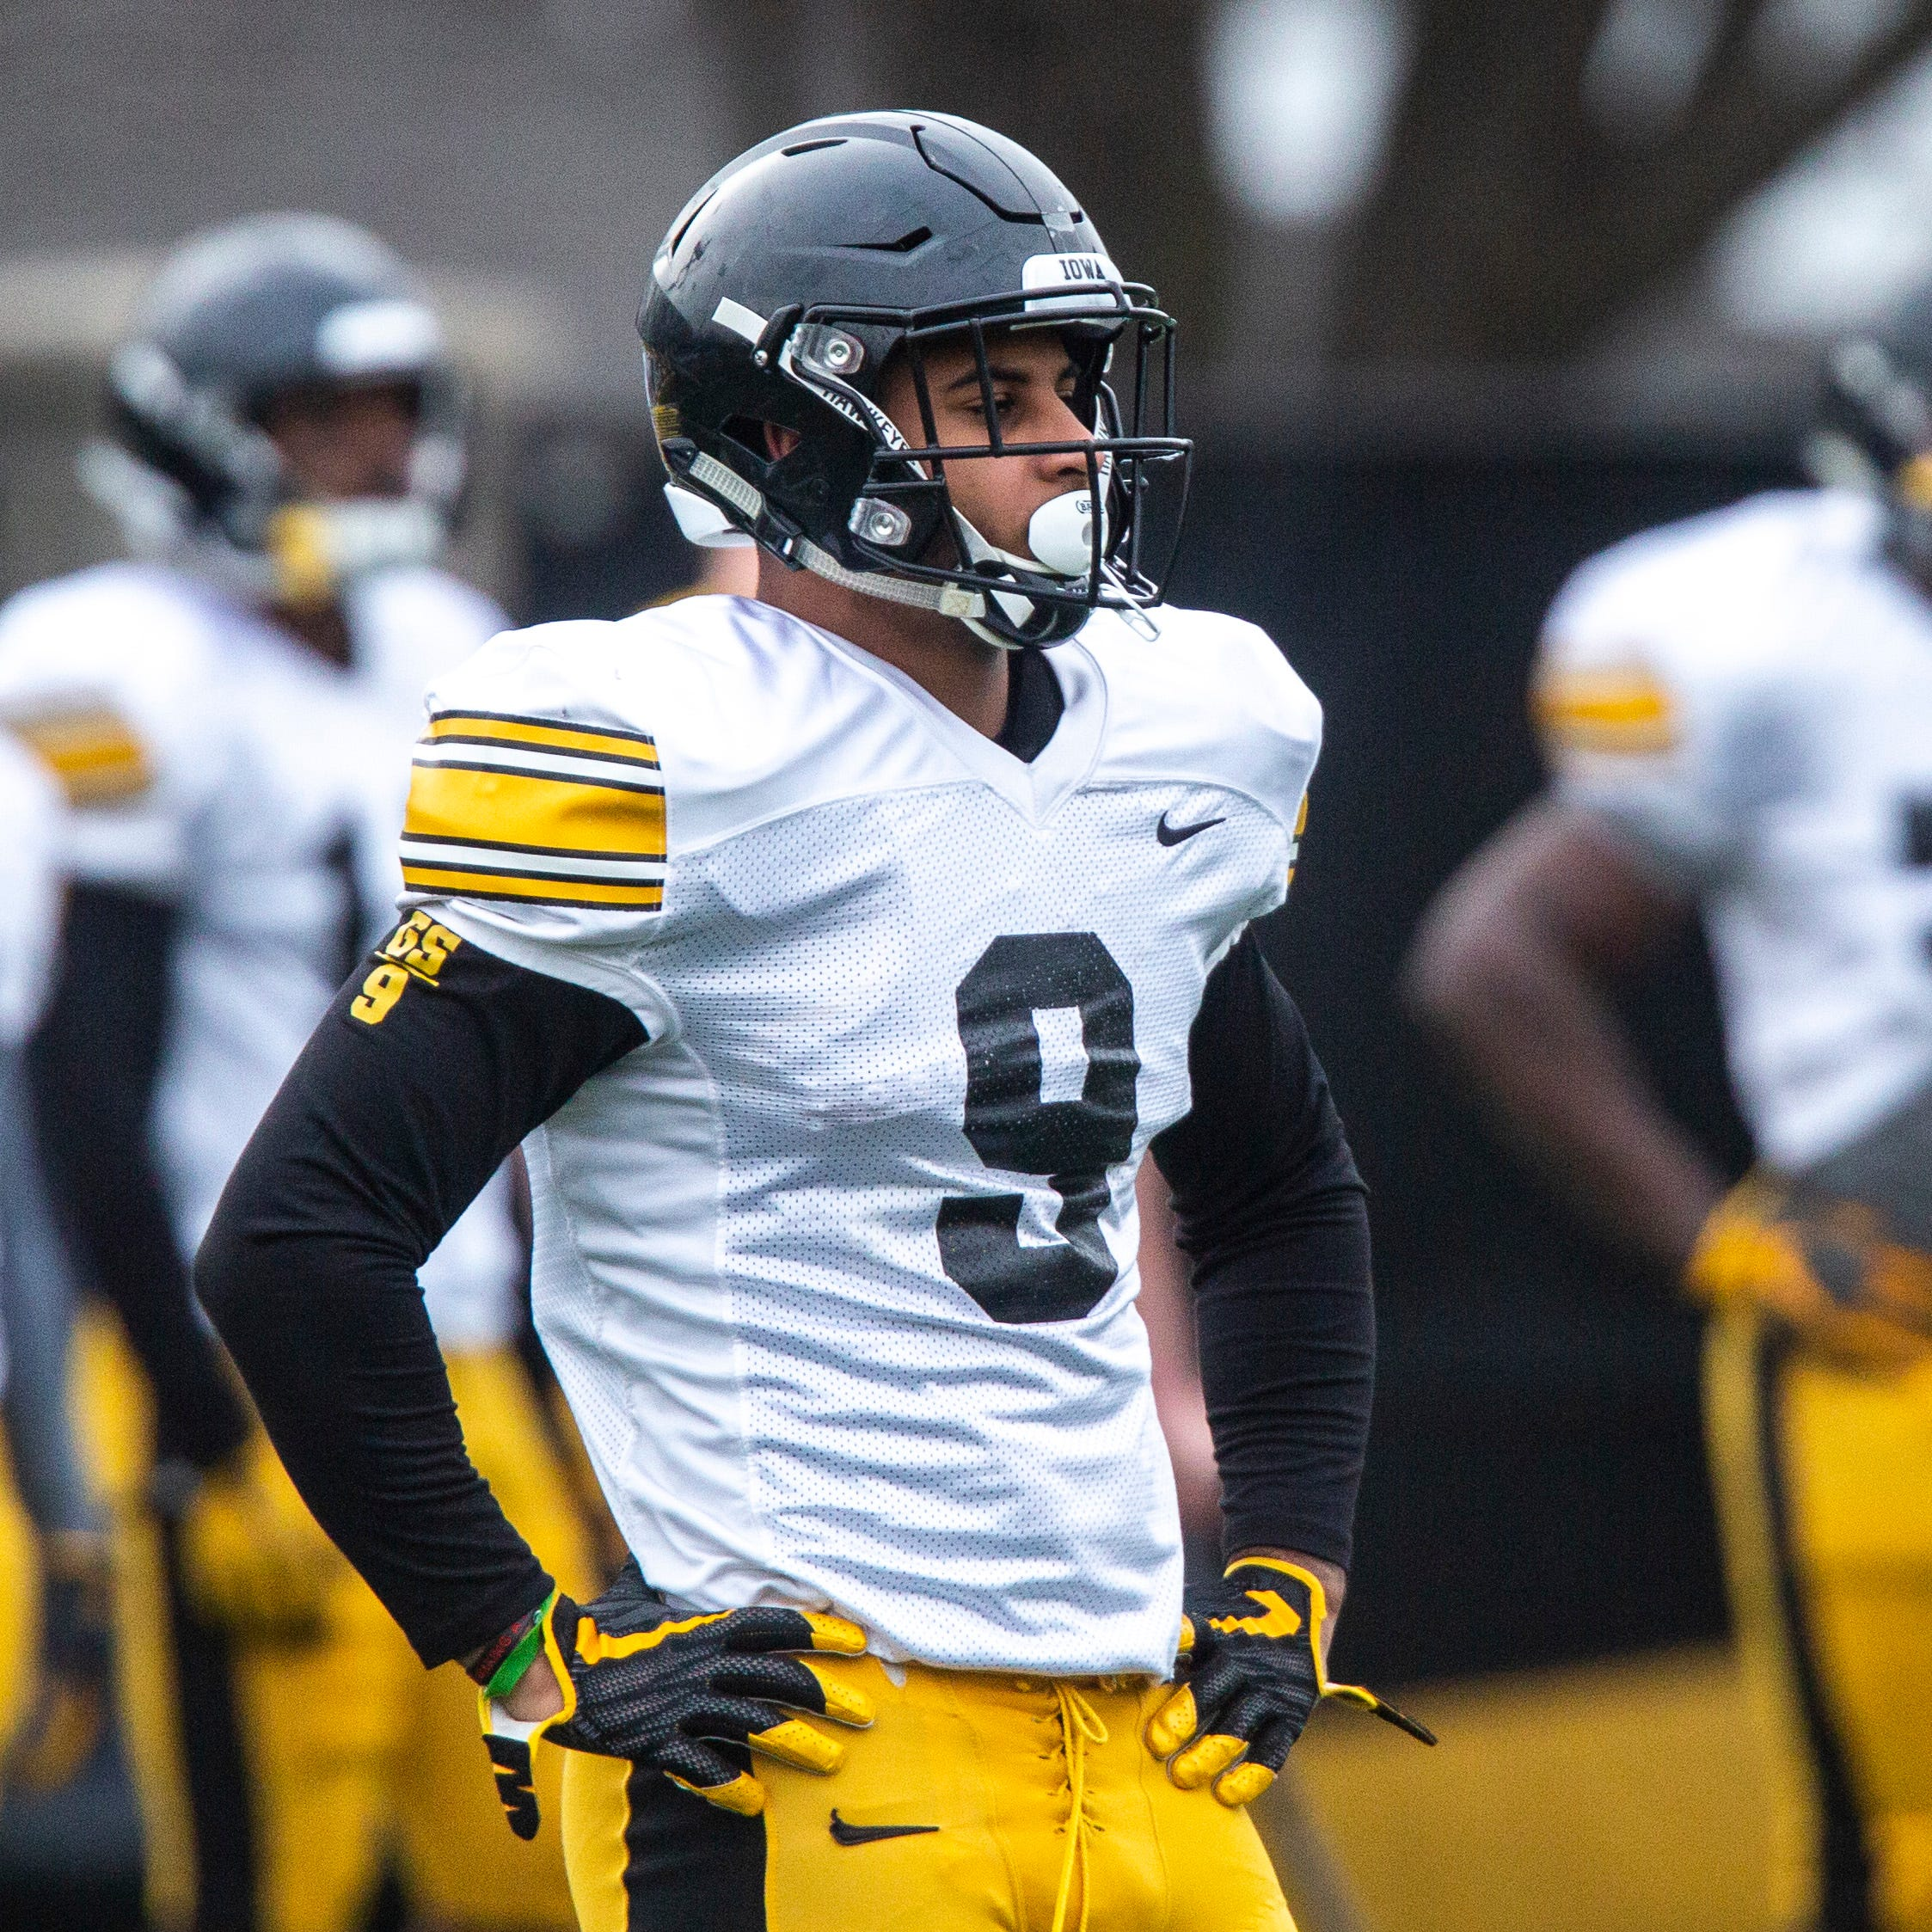 Geno Stone looks to make his mark as leader of retooled Iowa Hawkeye secondary